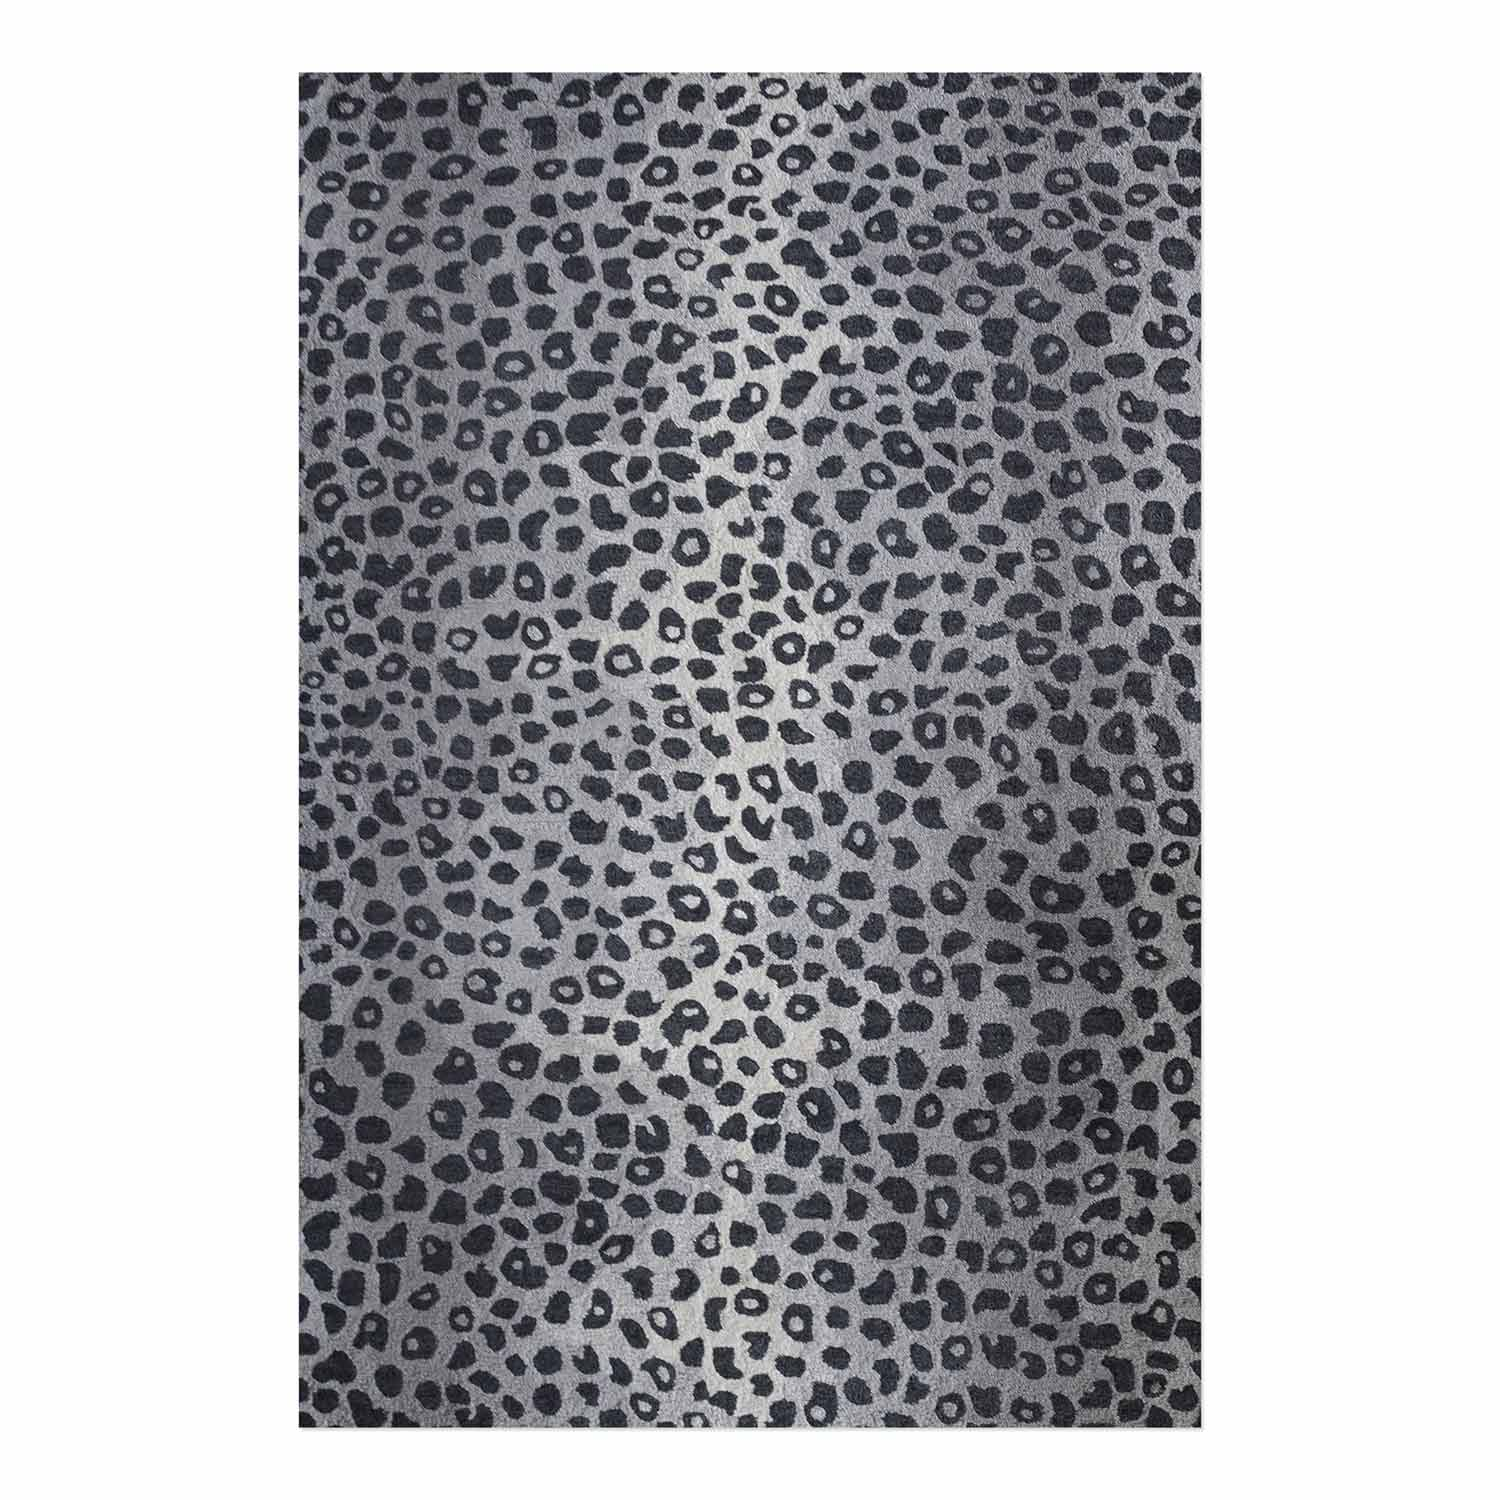 Uttermost Virunga 8 x 10 Rug - Gray